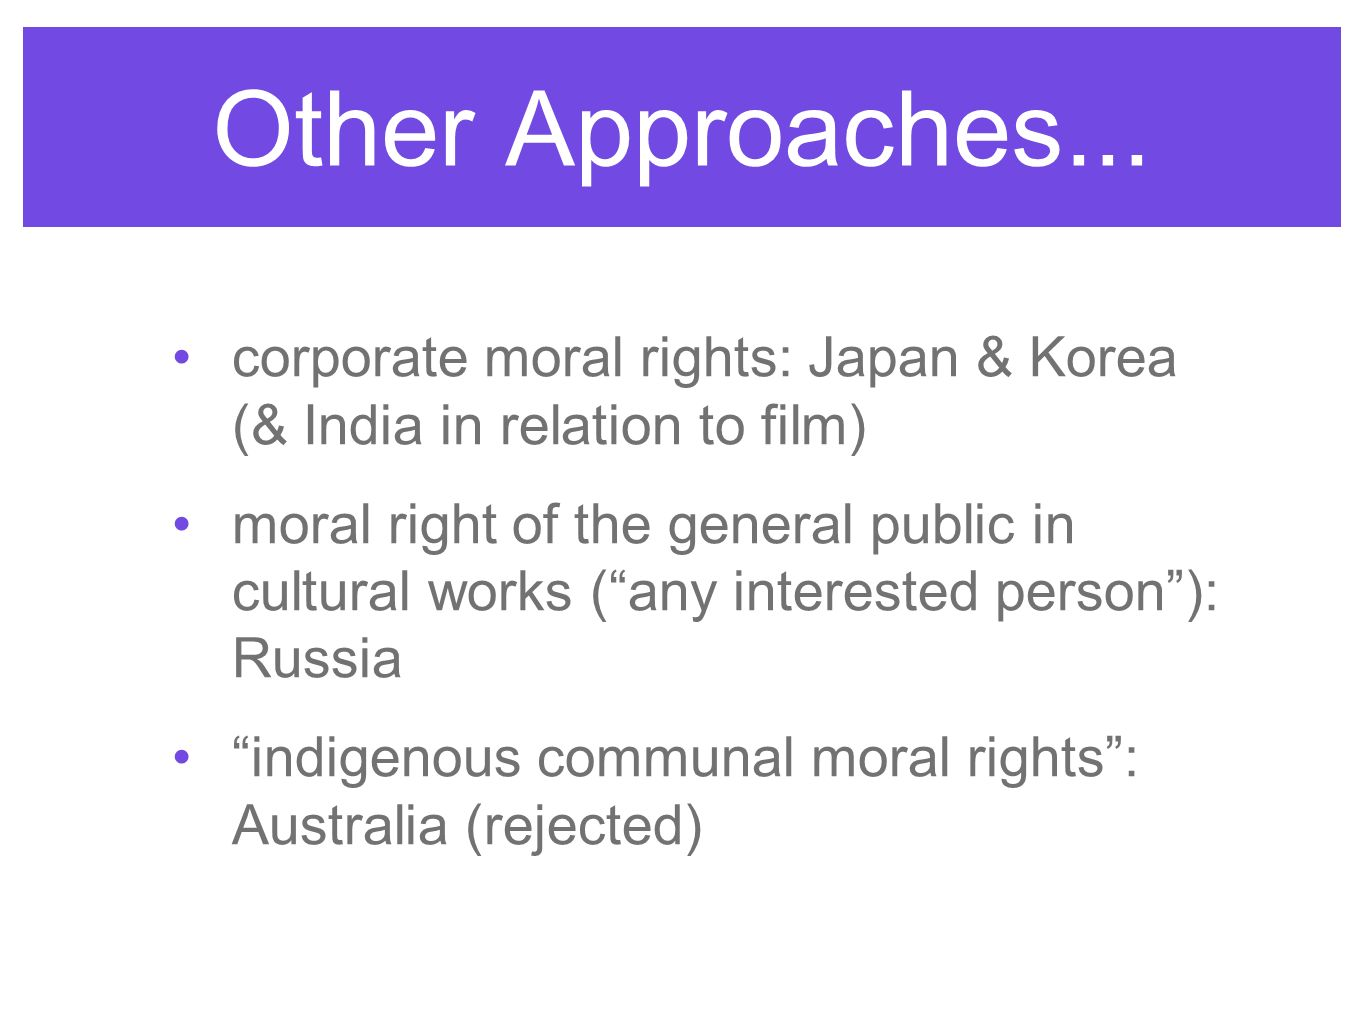 Other Approaches... corporate moral rights: Japan & Korea (& India in relation to film)